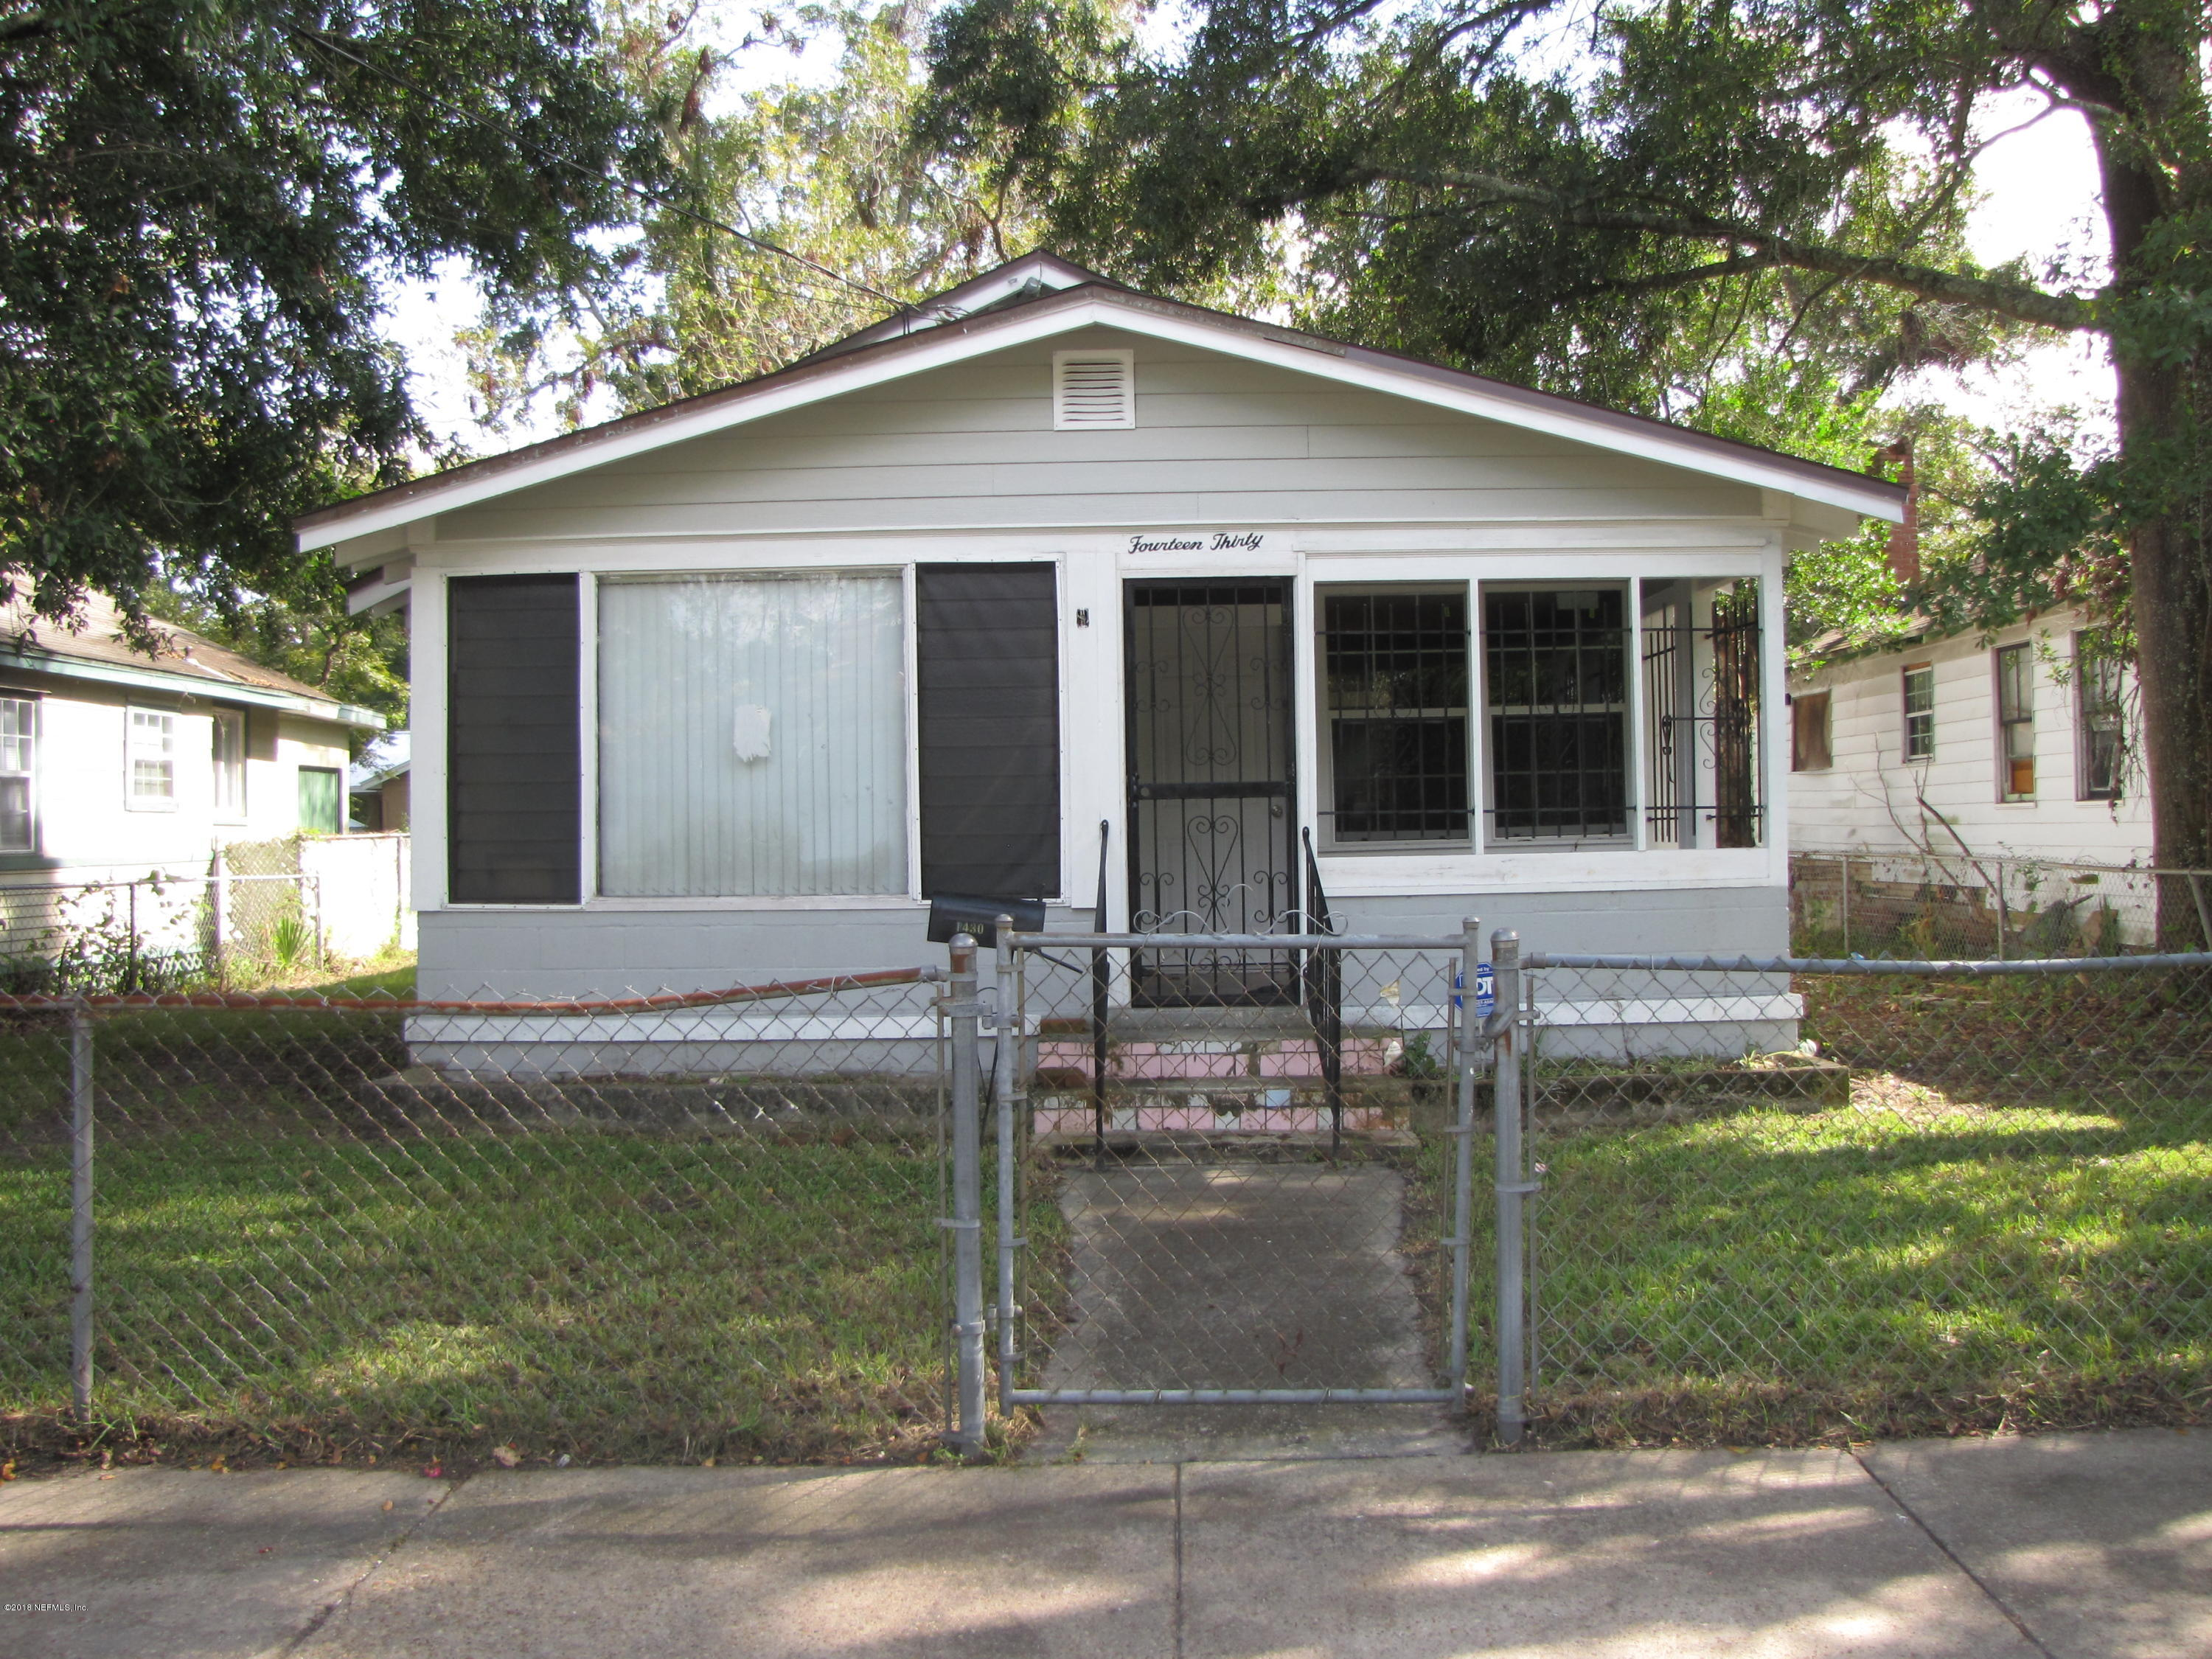 1430 15TH, JACKSONVILLE, FLORIDA 32209, 3 Bedrooms Bedrooms, ,2 BathroomsBathrooms,Residential - single family,For sale,15TH,964737